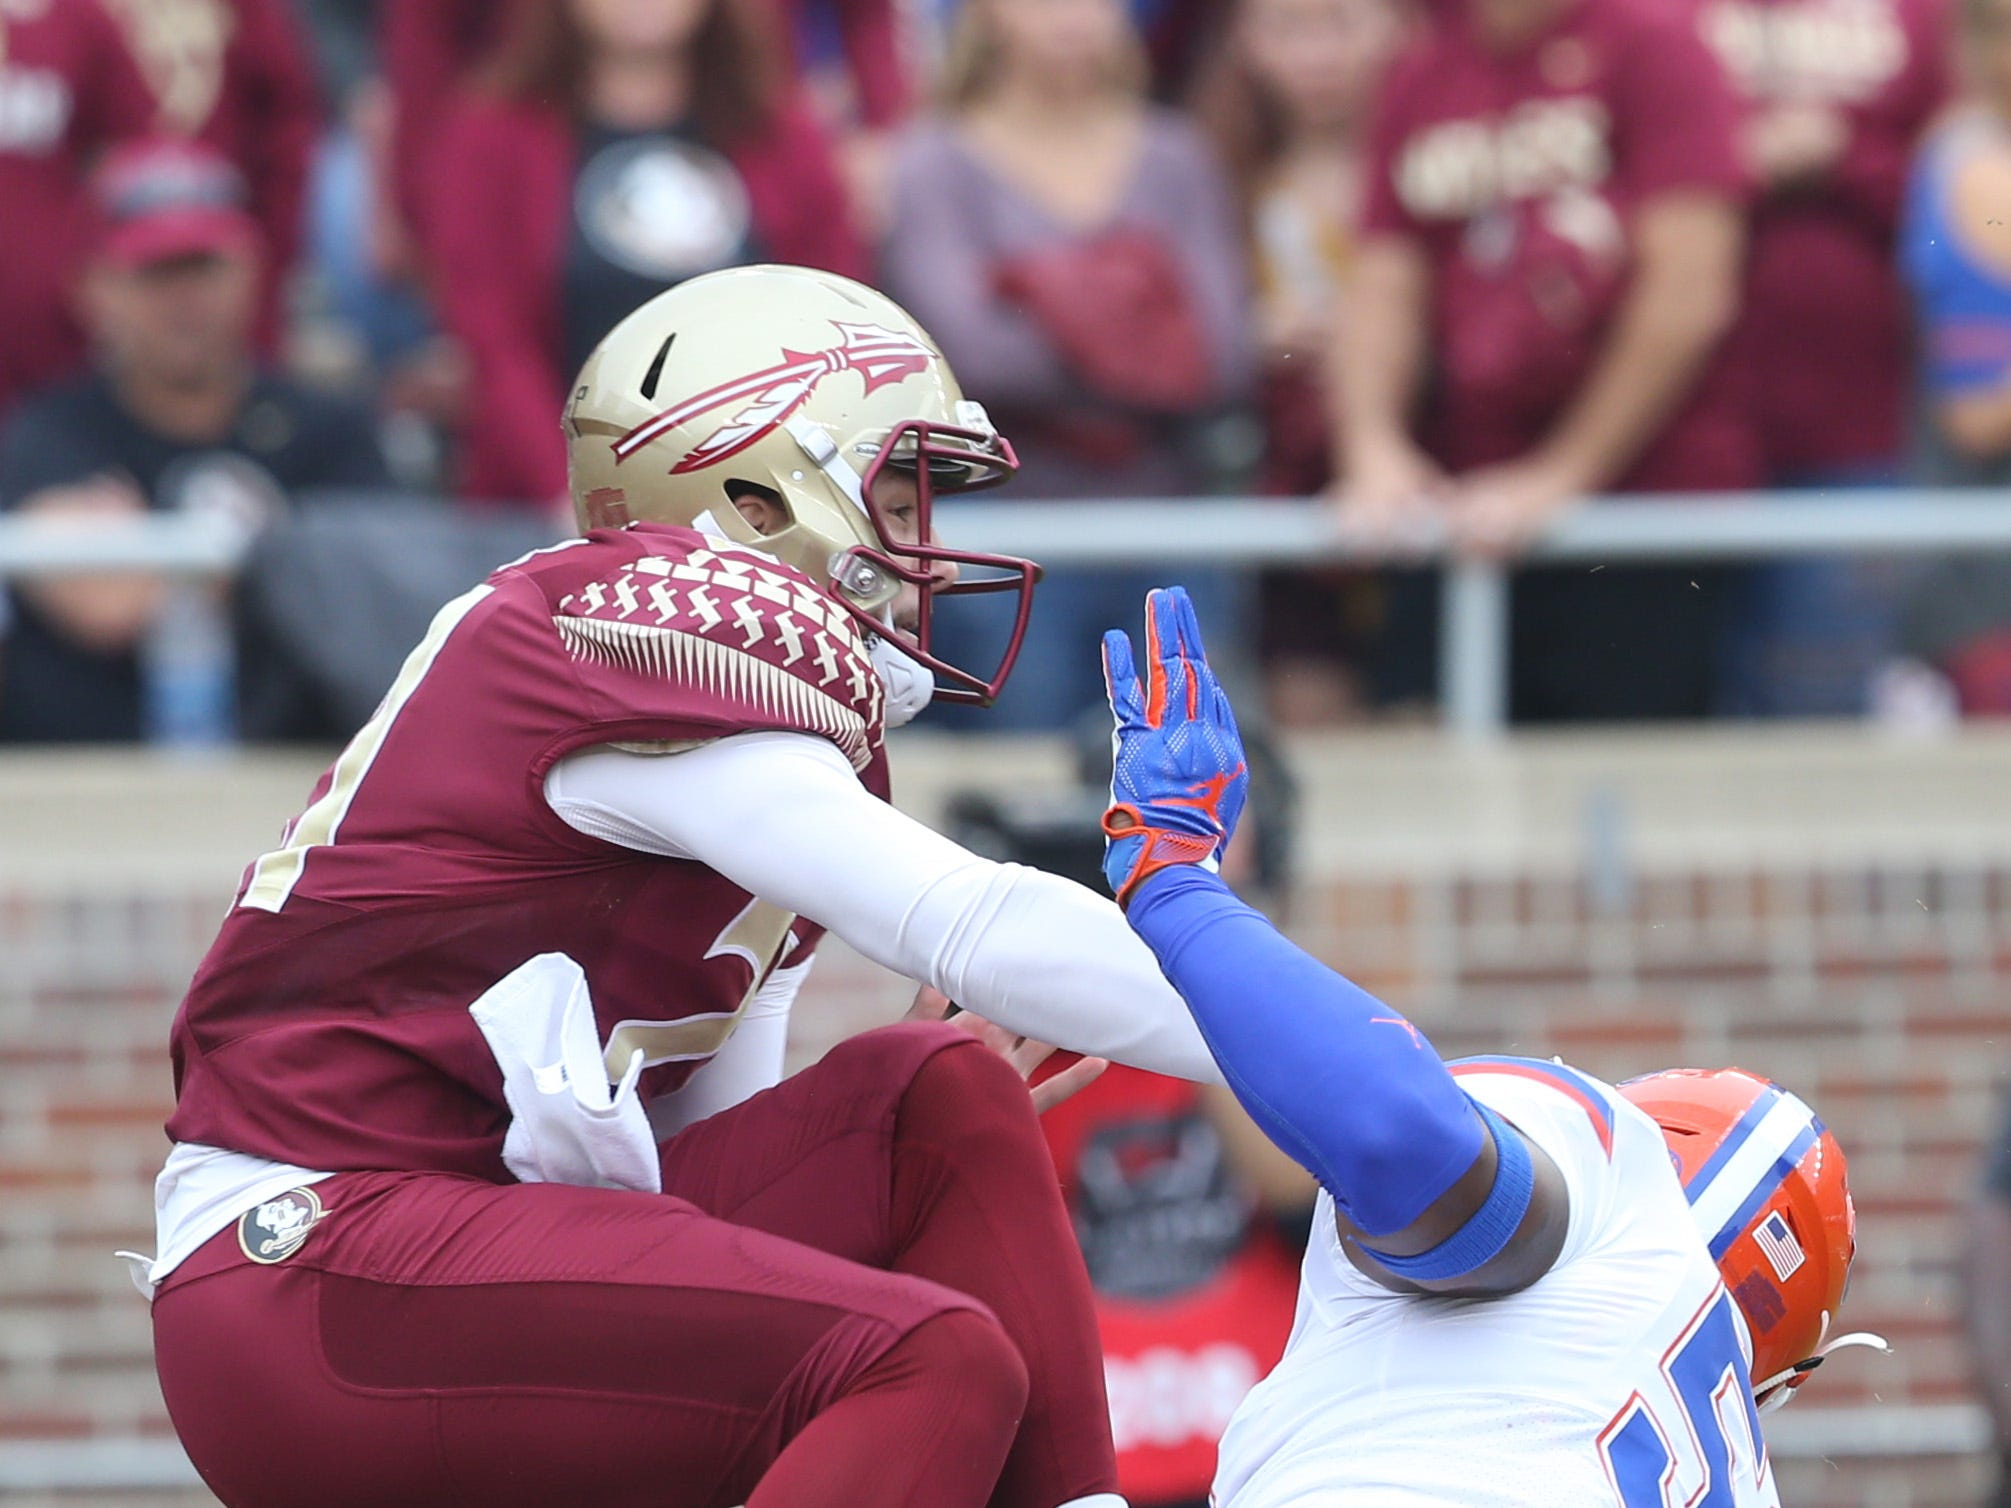 Florida Gators linebacker Ventrell Miller (51) is late to blocking the punt as the Florida State Seminoles take on their rival the Florida Gators in college football at Doak S. Campbell Stadium, Saturday, Nov. 24, 2018.